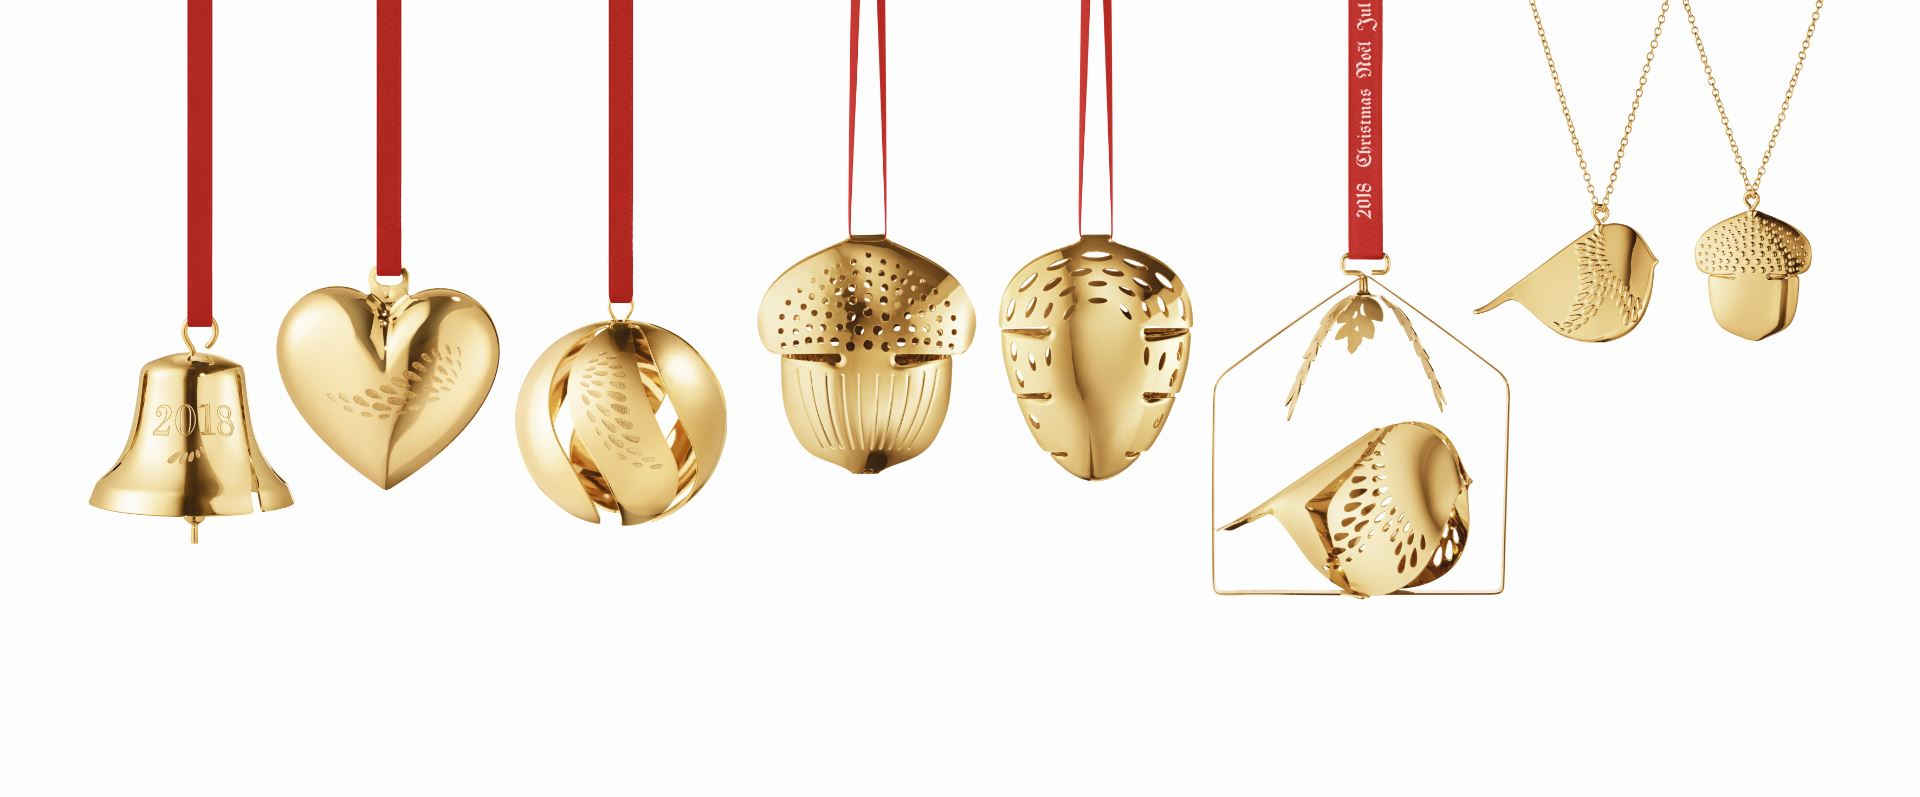 Georg Jensen Introduces Christmas Collectibles By Monica